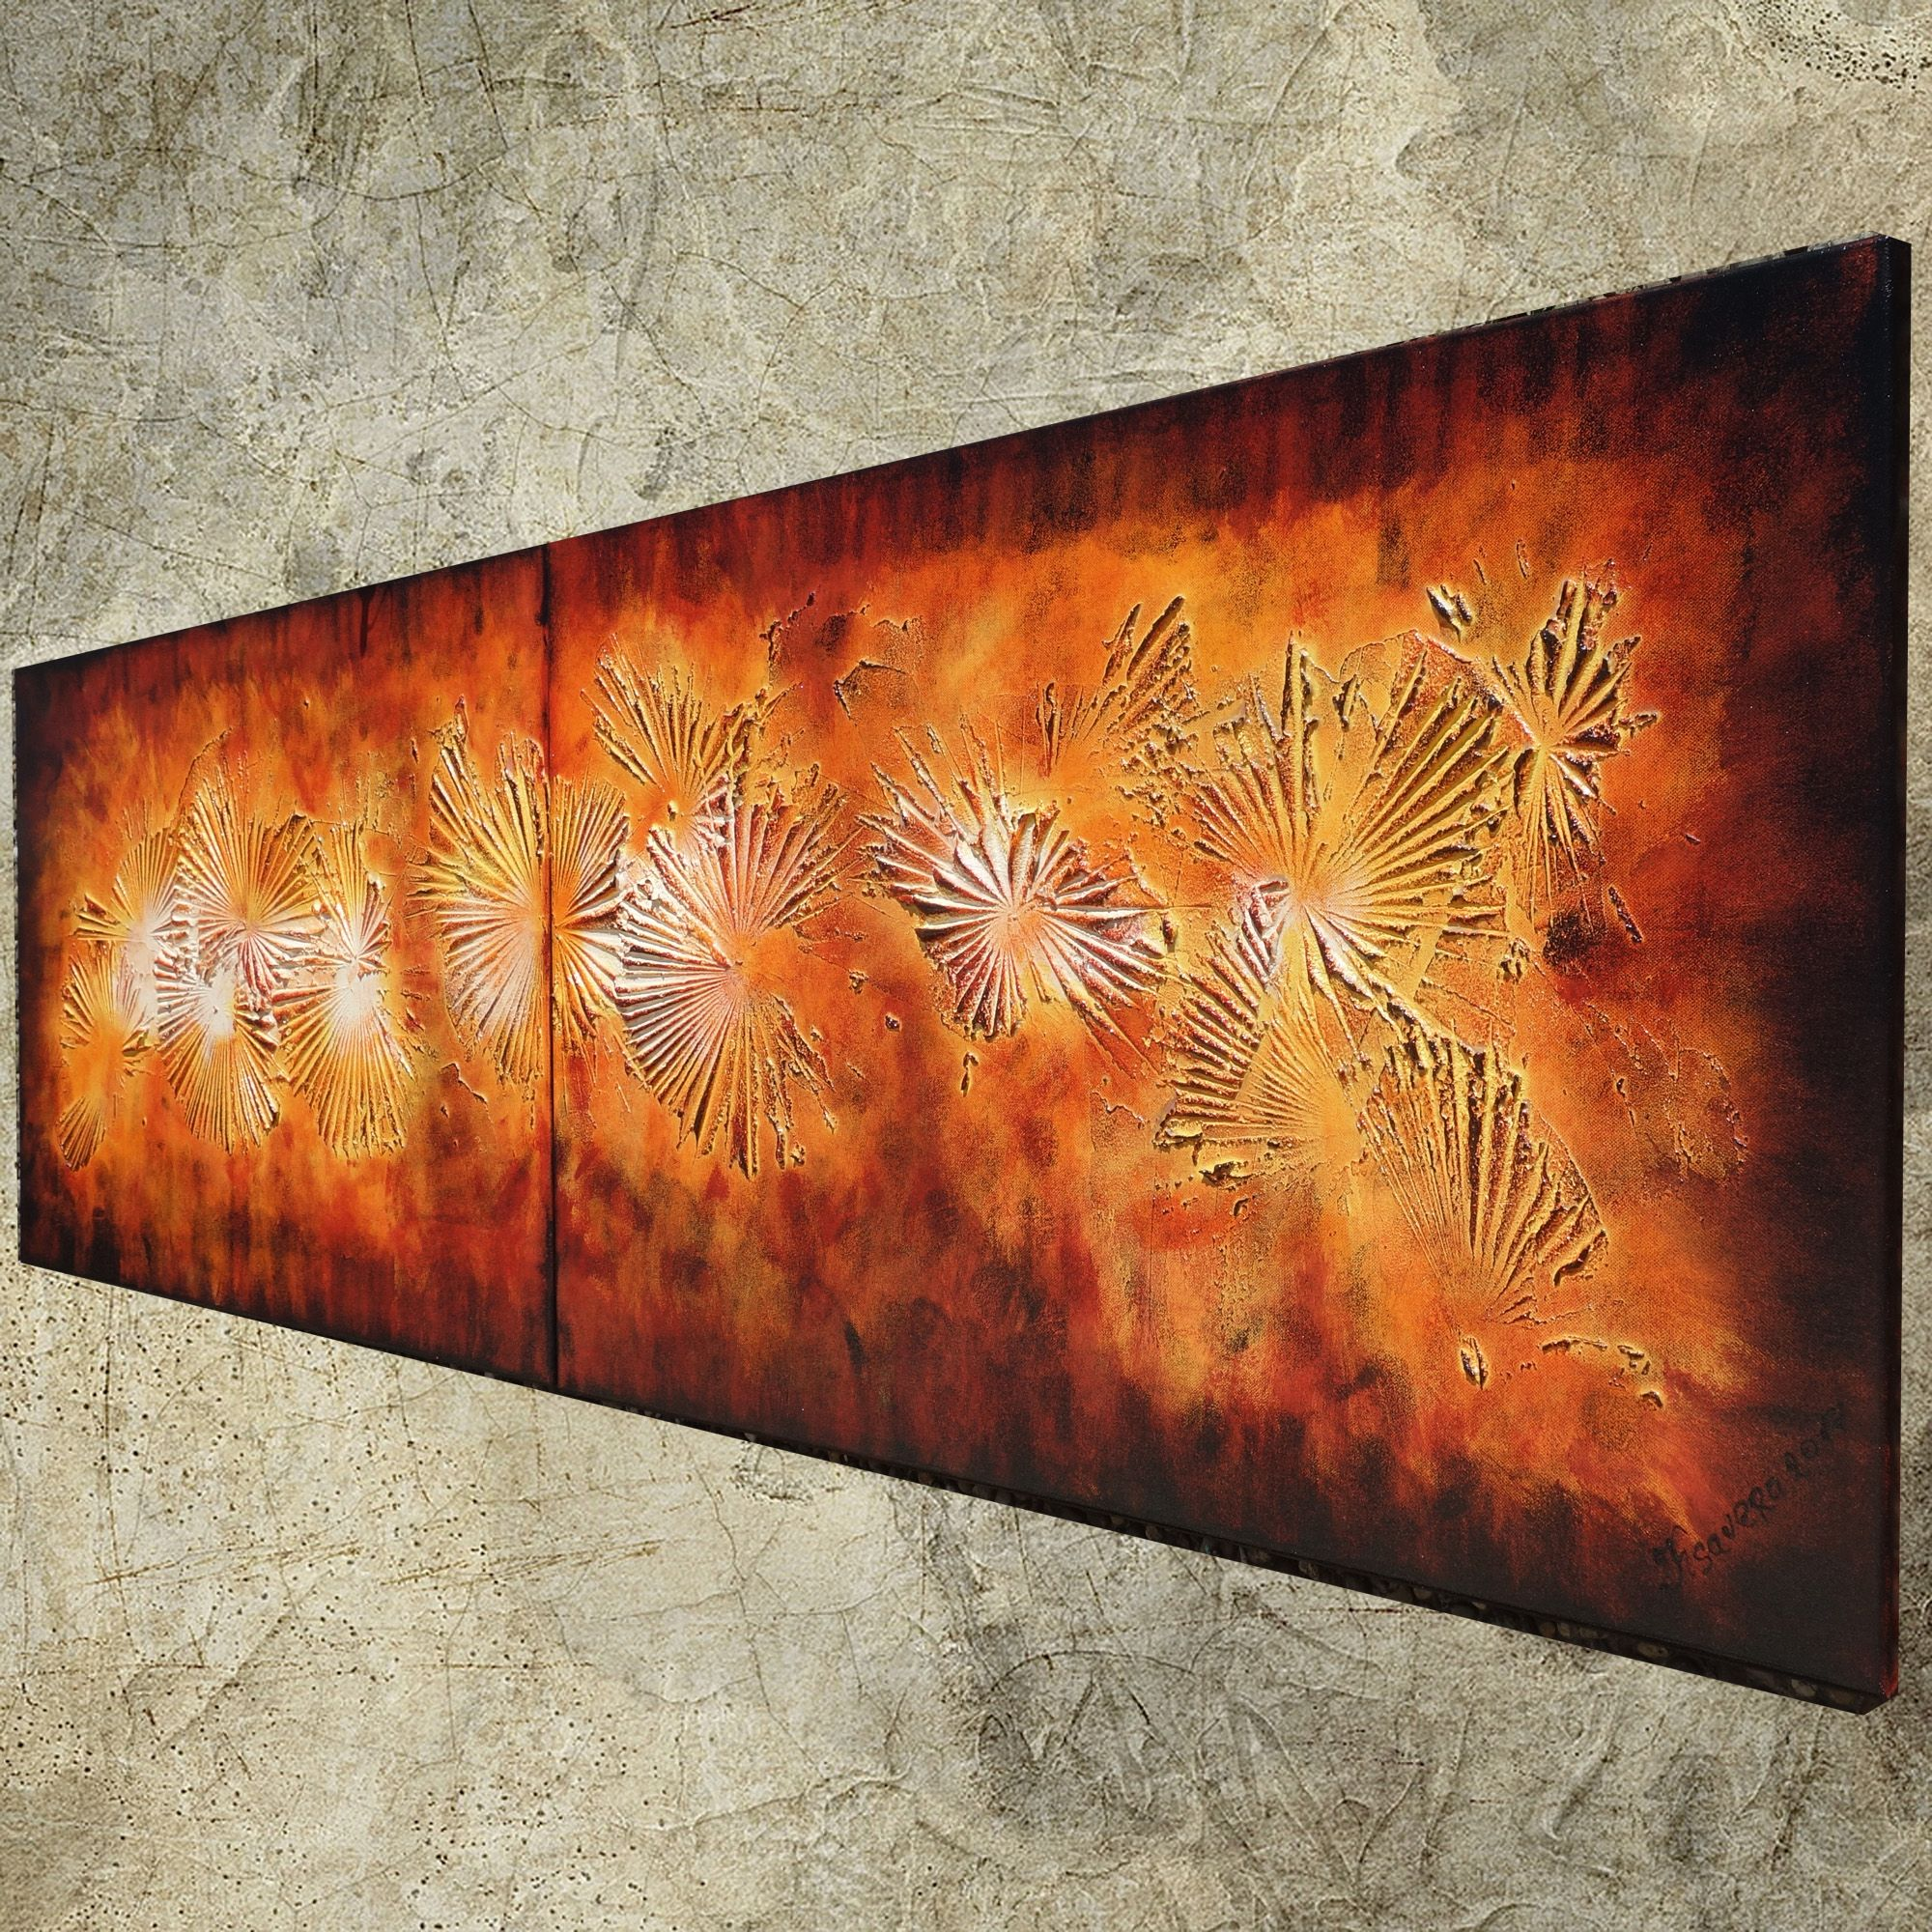 Fire lava abstract textured paintings diptych by Ksavera ART Artboost